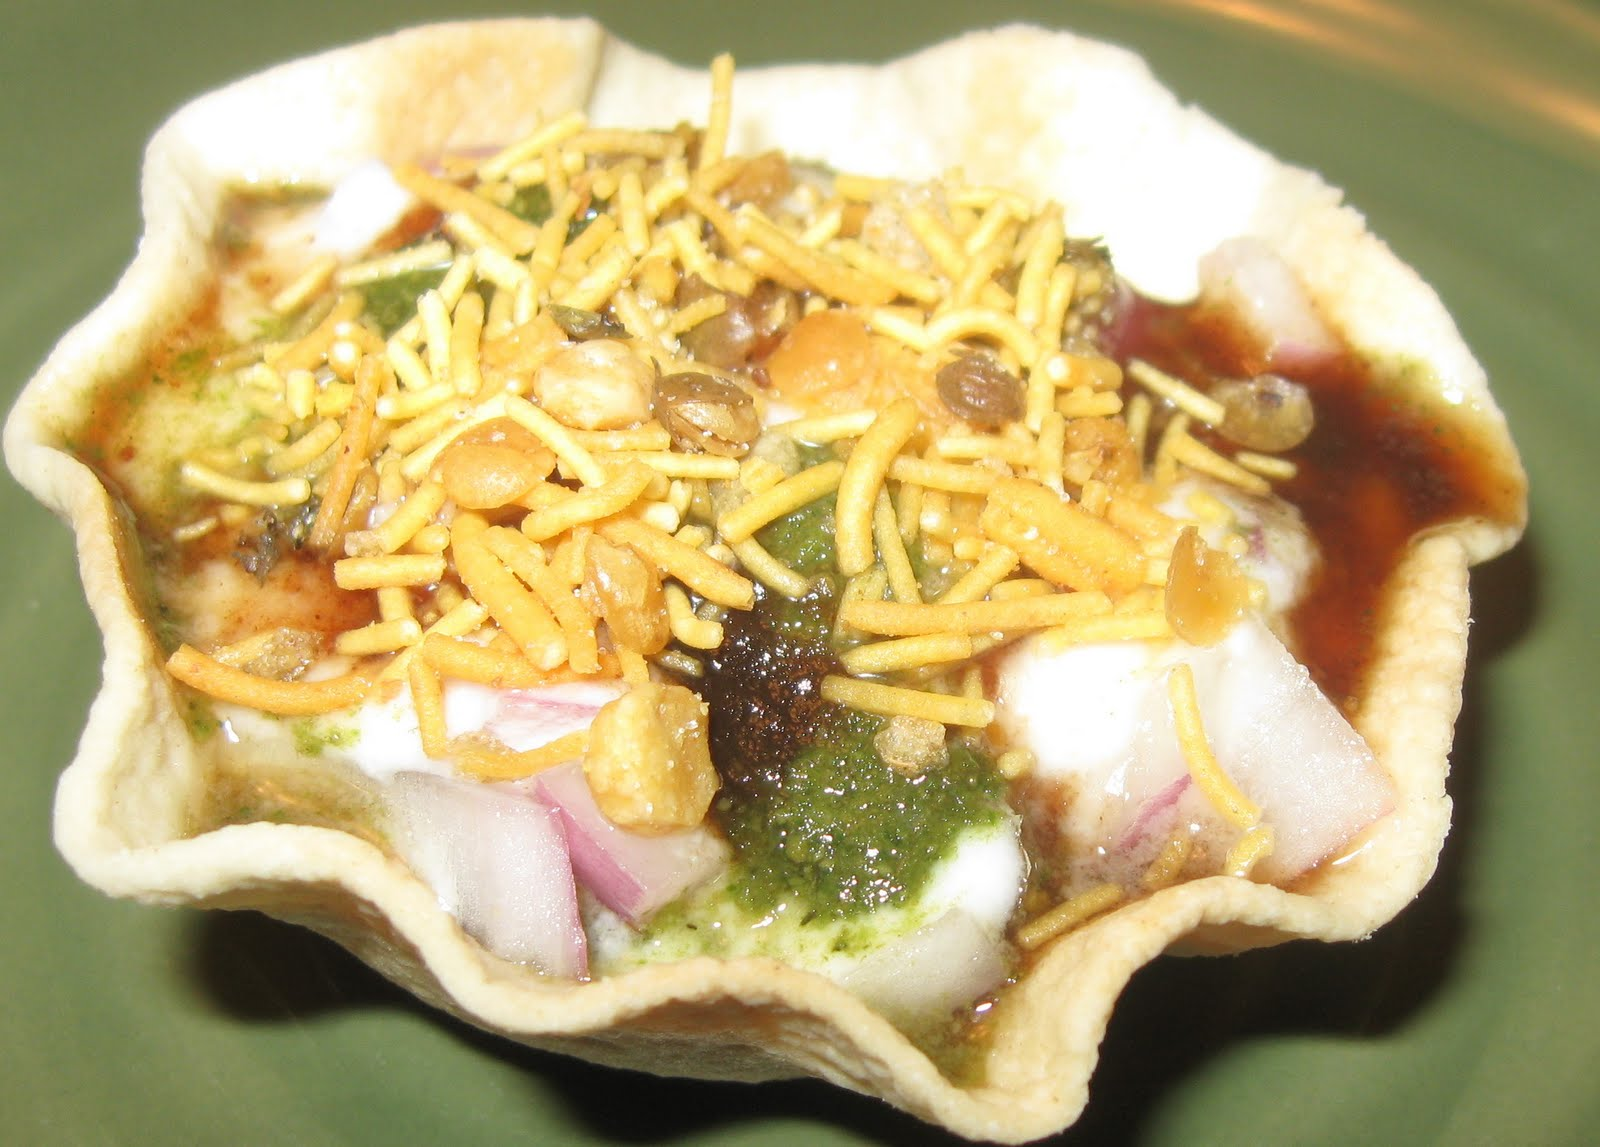 Katori chaat / Spicy tarts